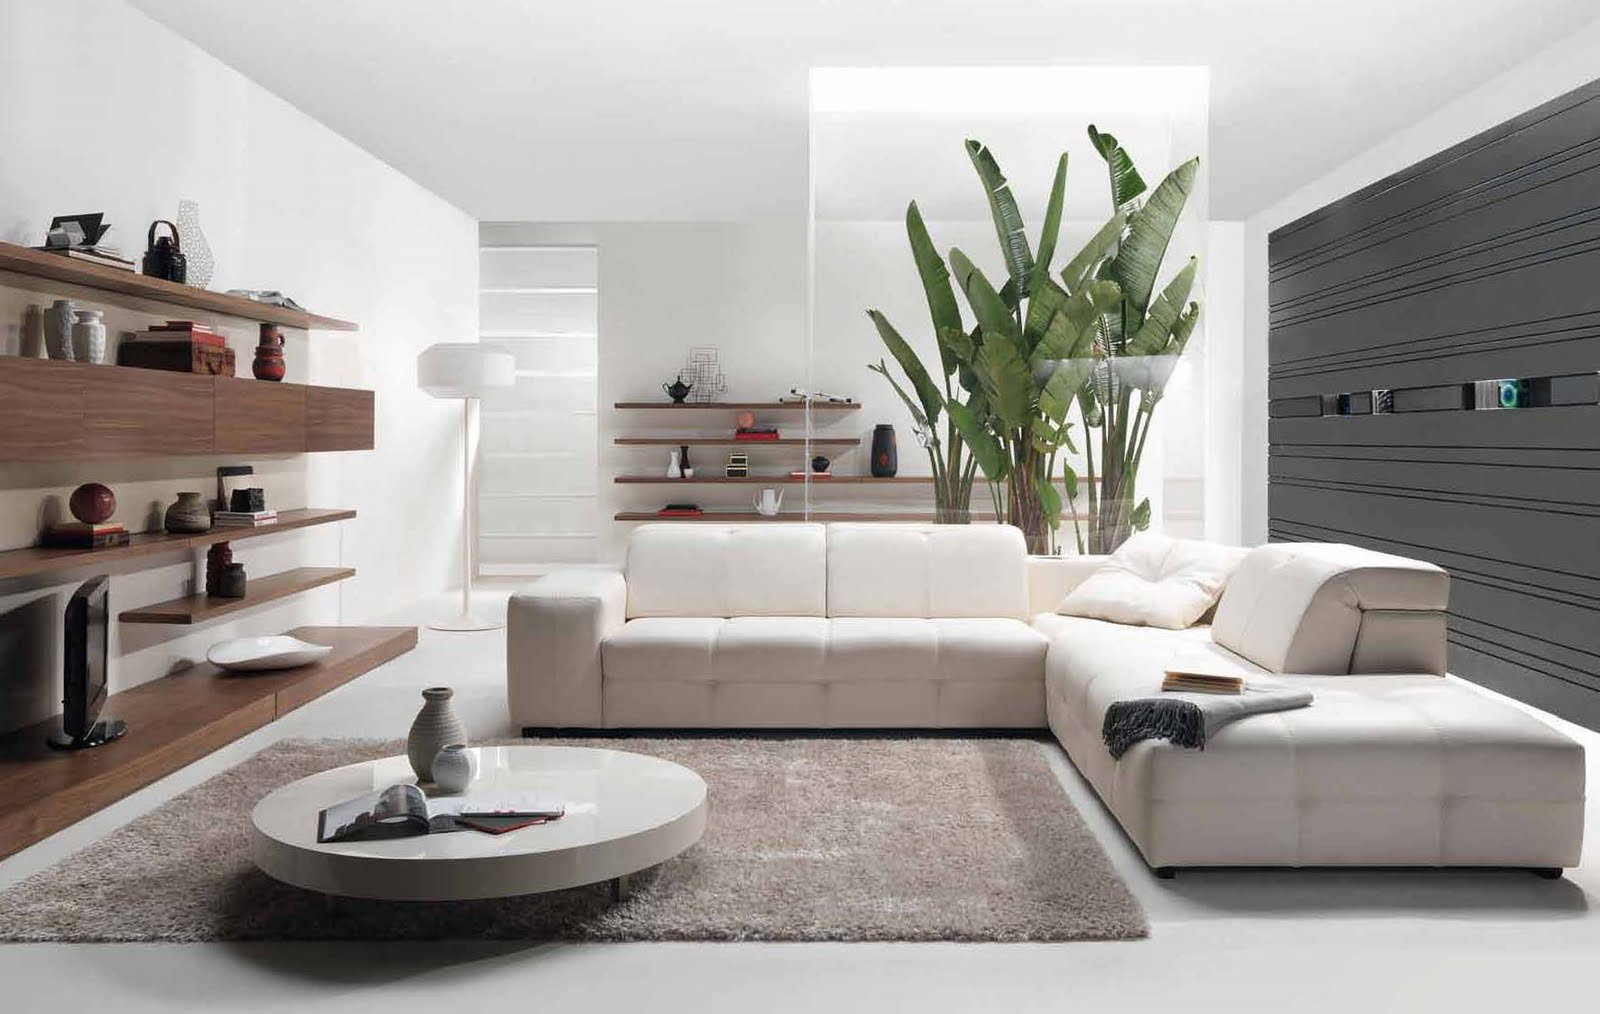 living room modern ideas modern home interior furniture designs diy ideas living room ideas 2021